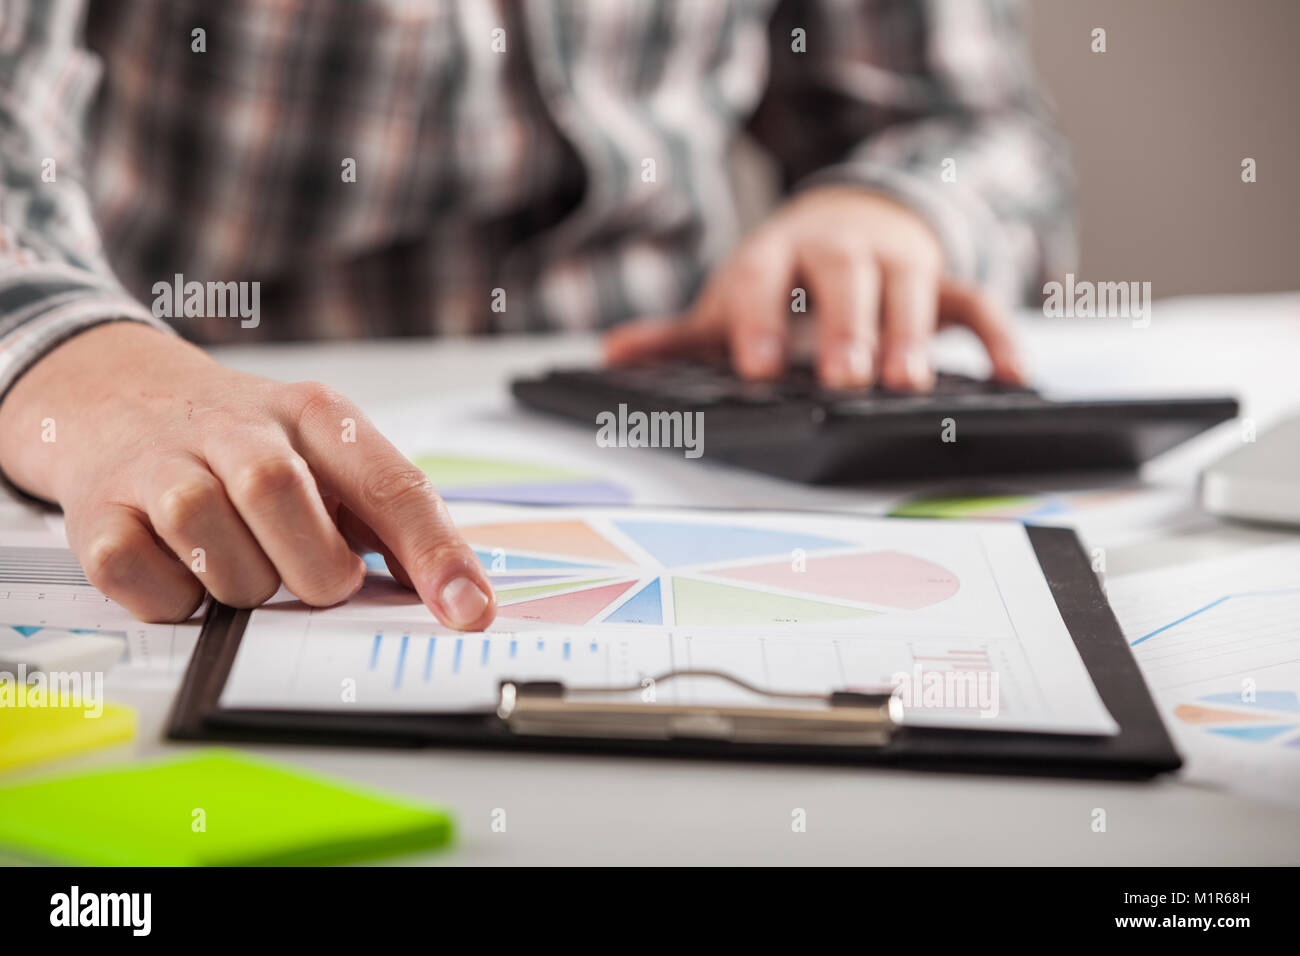 Businessman working with graph documents. Stock market chart and finger pointing on tablet in office. - Stock Image